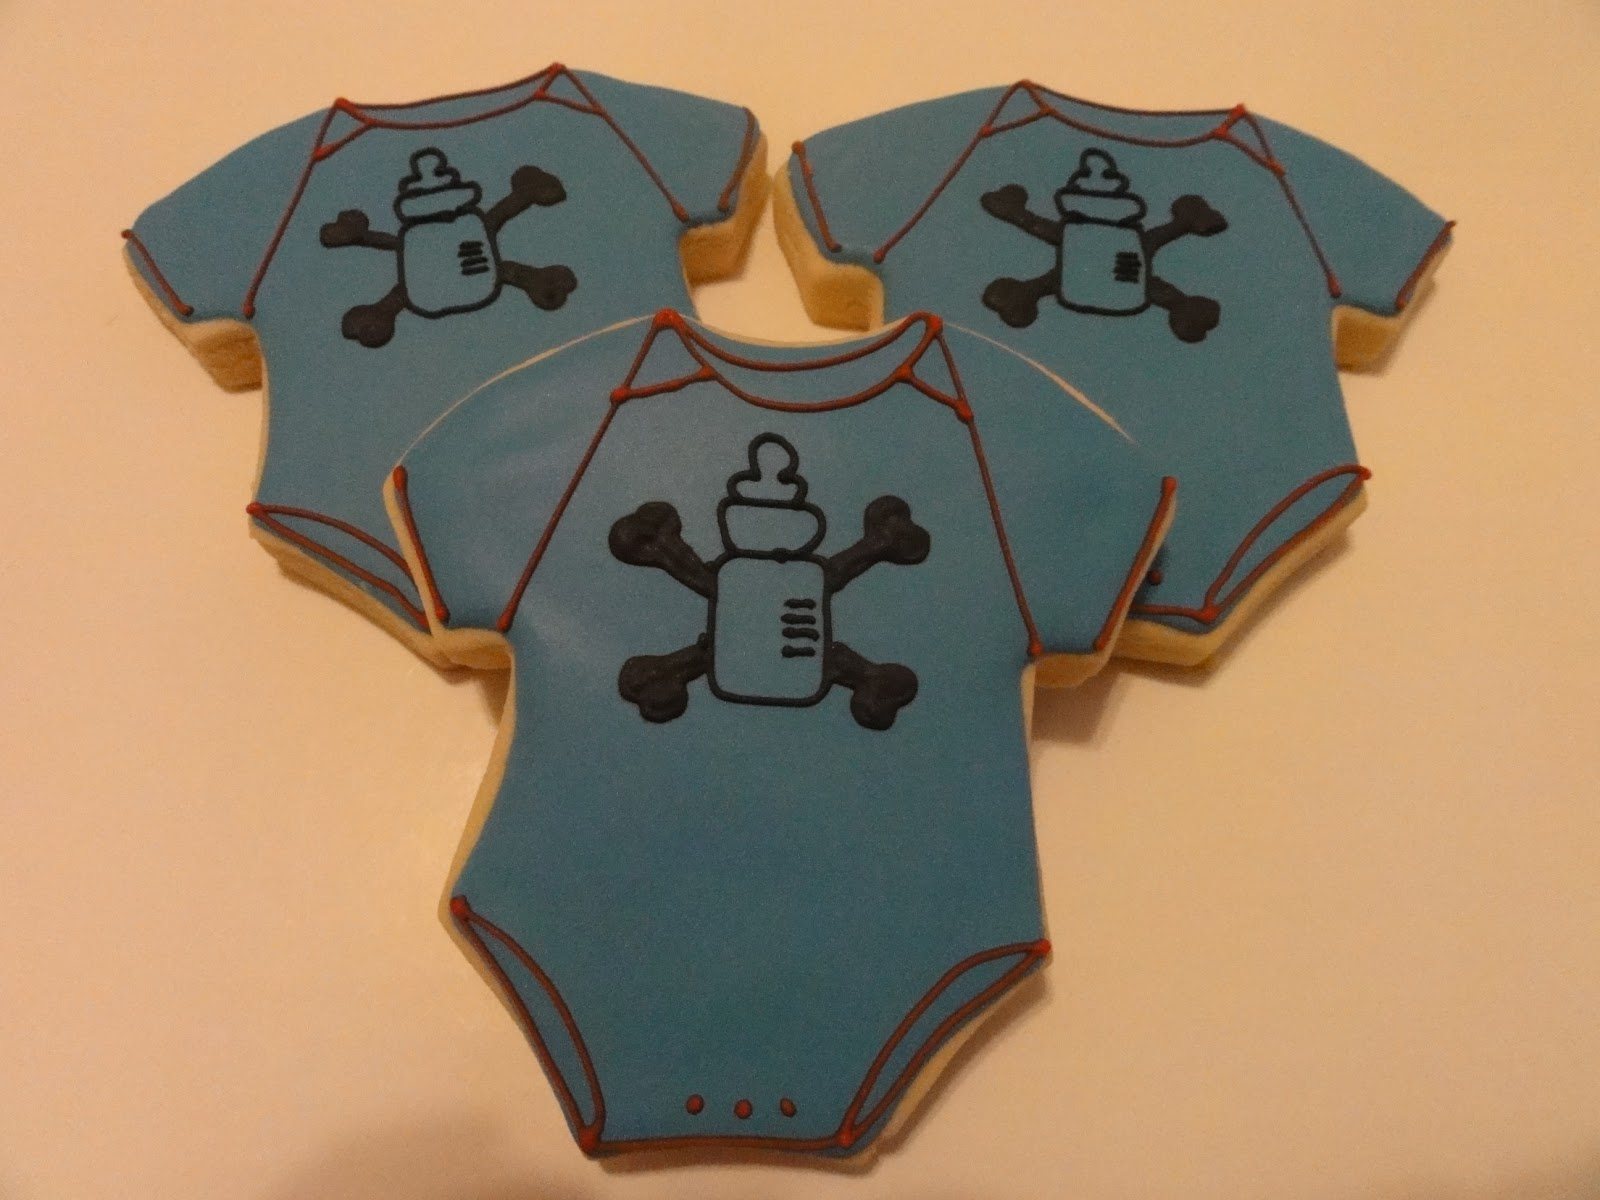 with a bottle and cross bones on it pirate theme baby shower cookies